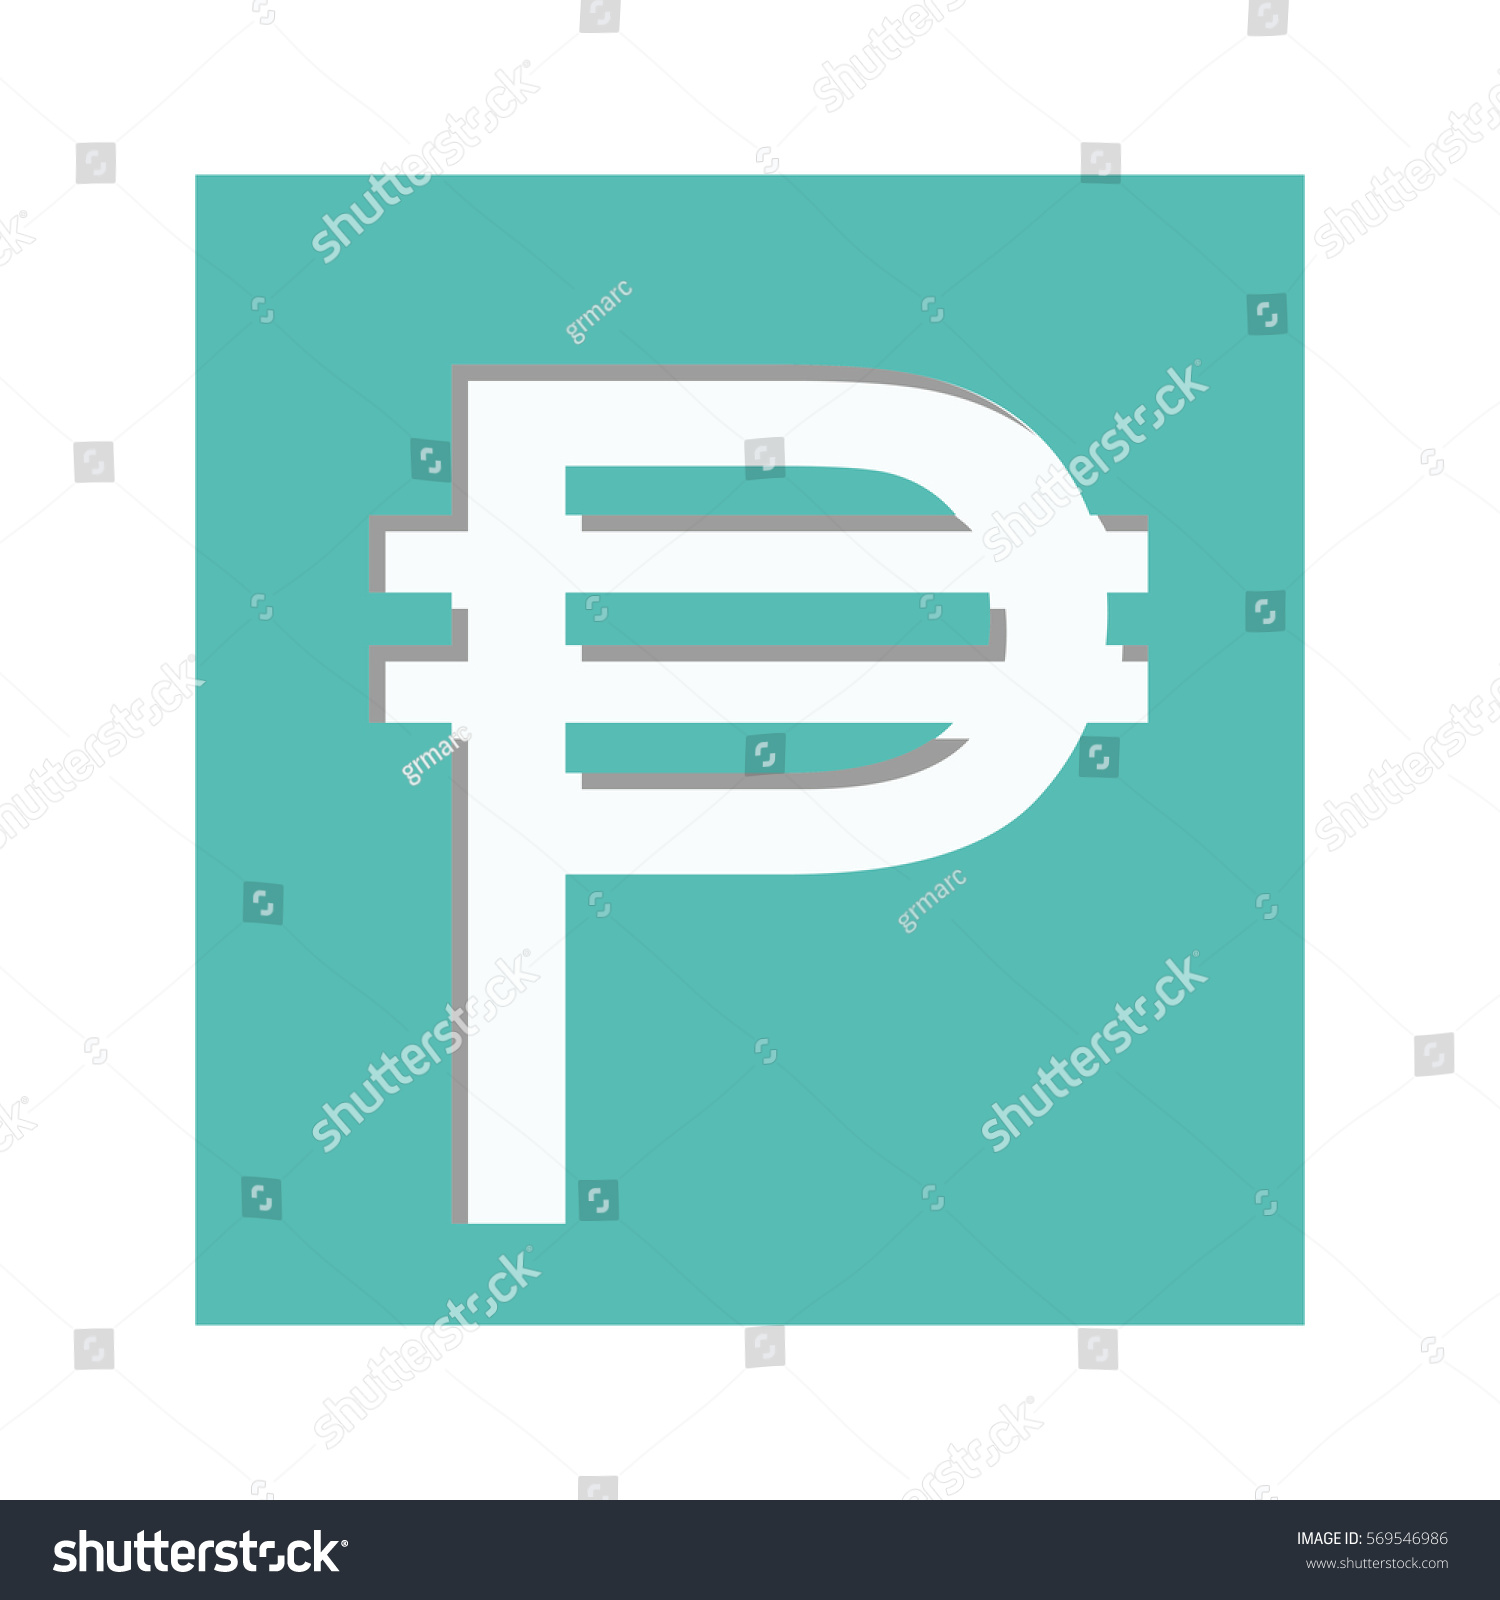 Ngn currency symbol choice image symbol and sign ideas philippine currency symbol images symbol and sign ideas blue aquamarine square currency symbol philippine stock vector biocorpaavc